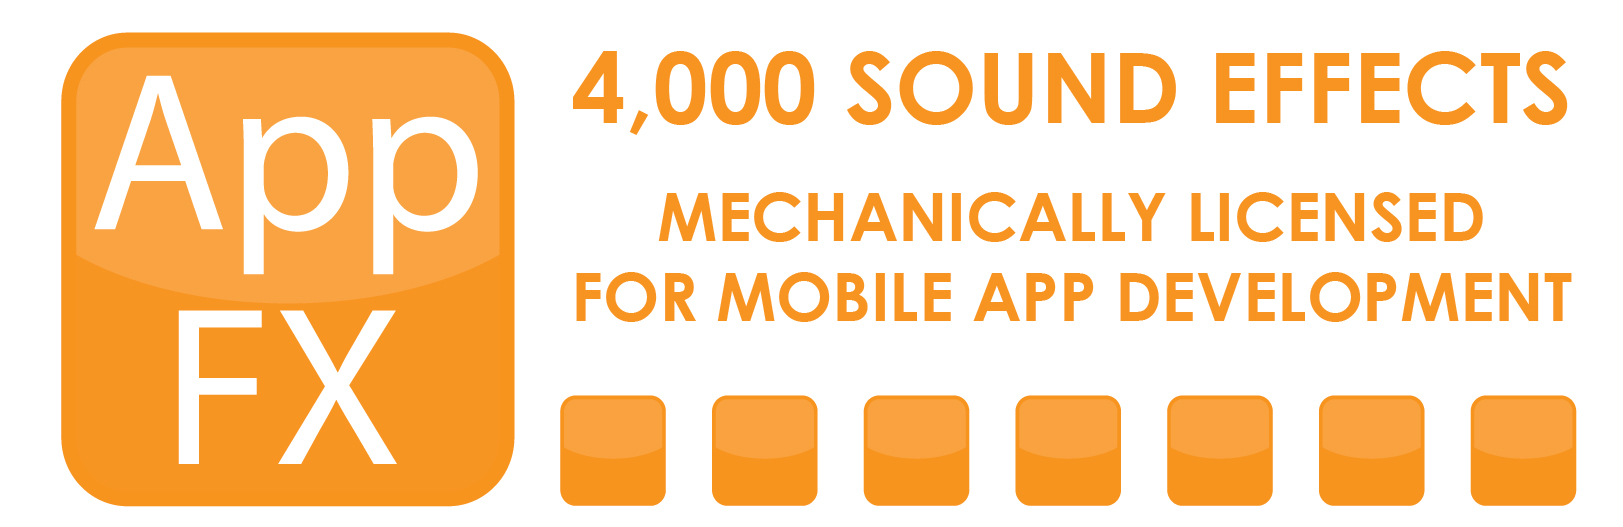 Sound Content for Mobile Apps